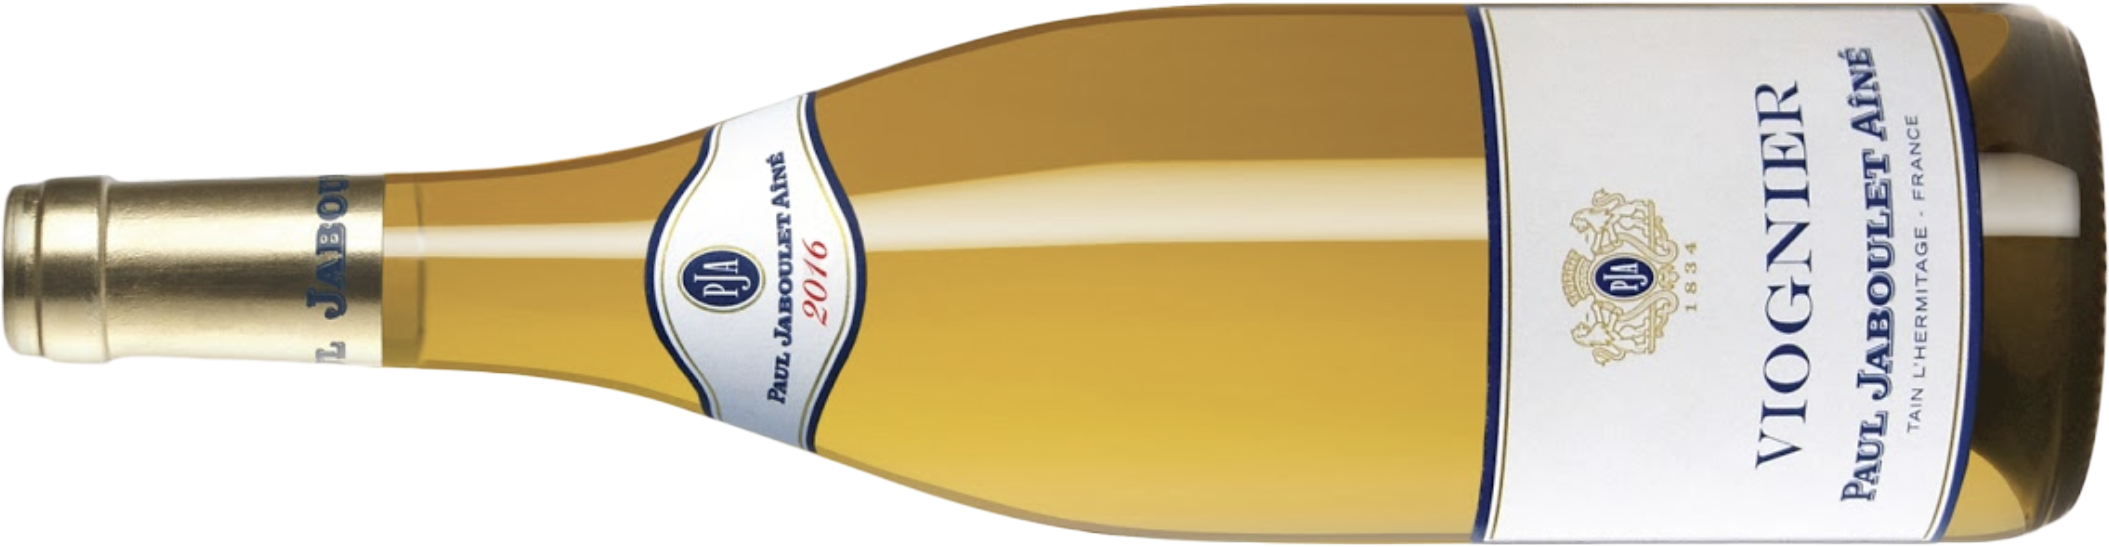 2016 Paul Jaboulet Aîné VDF Viognier Bottle